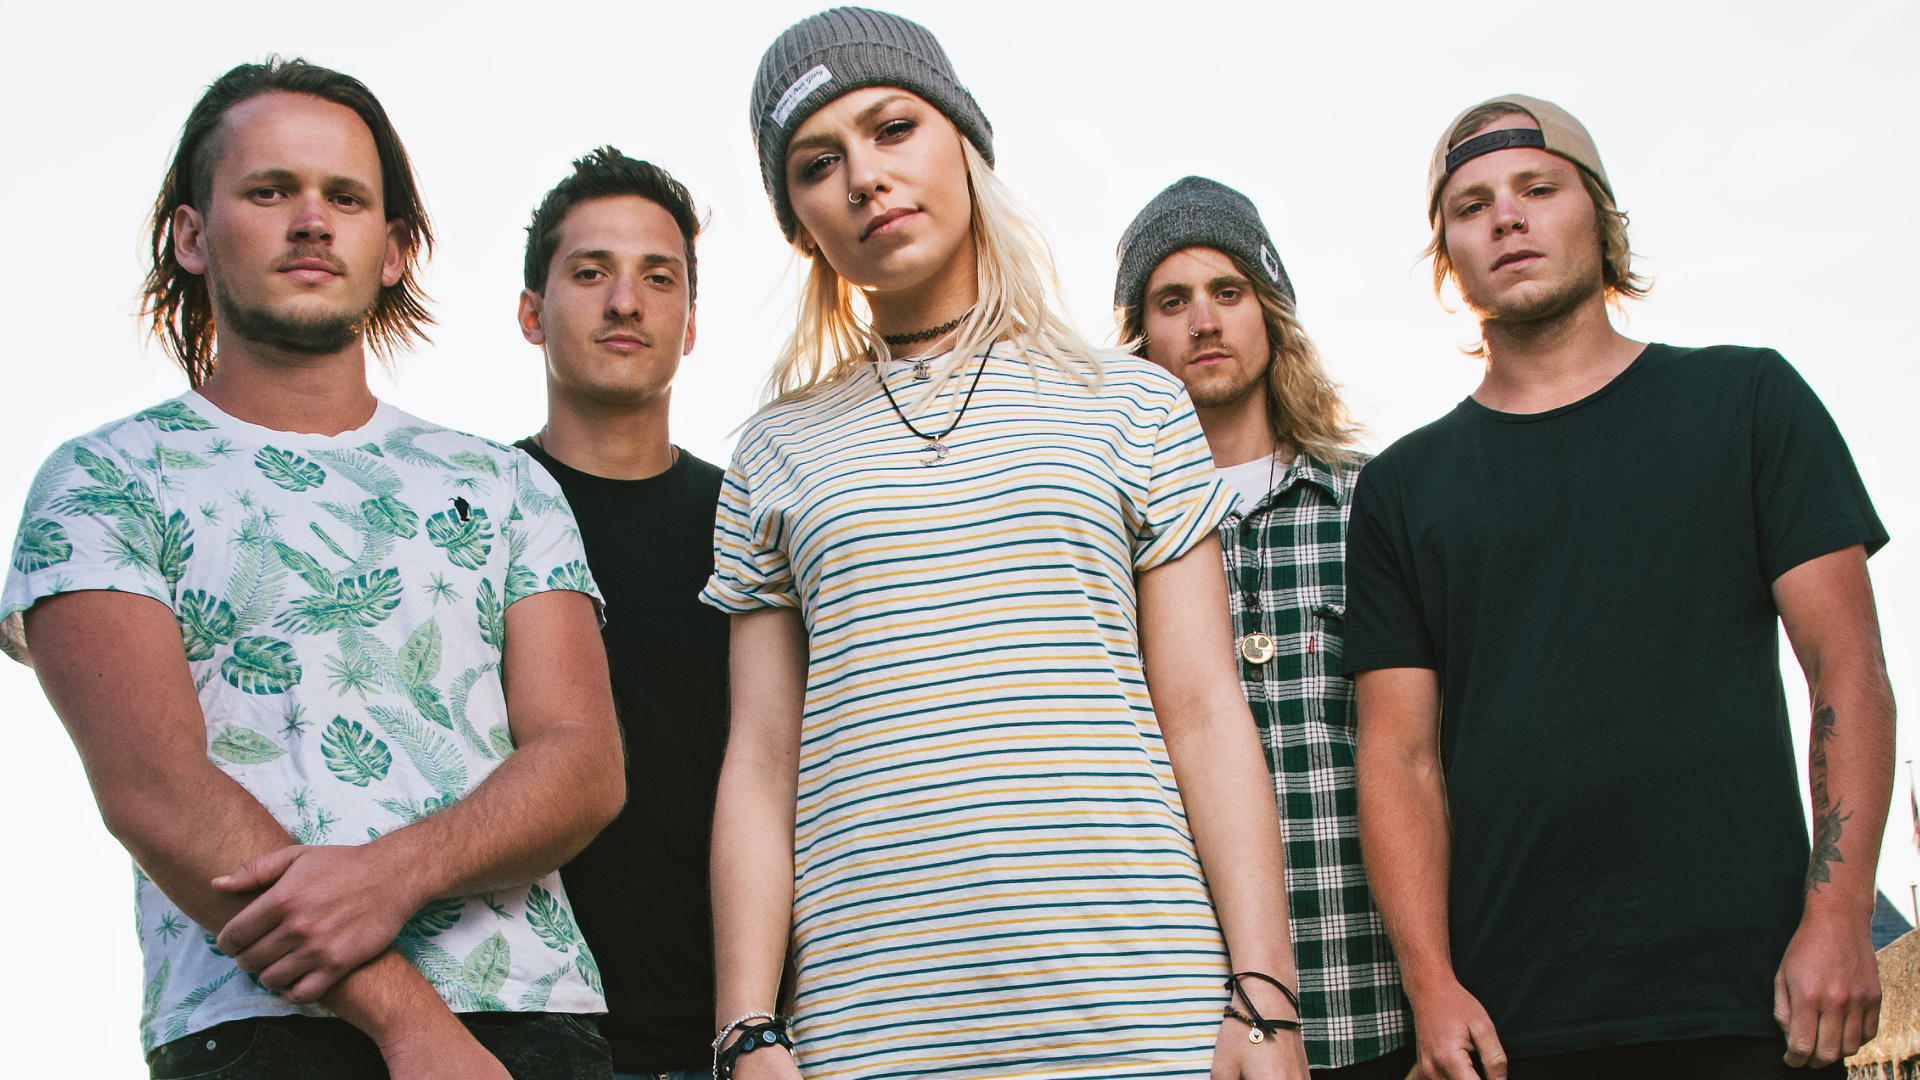 Tonight Alive Wallpapers Images Photos Pictures Backgrounds 1920x1080